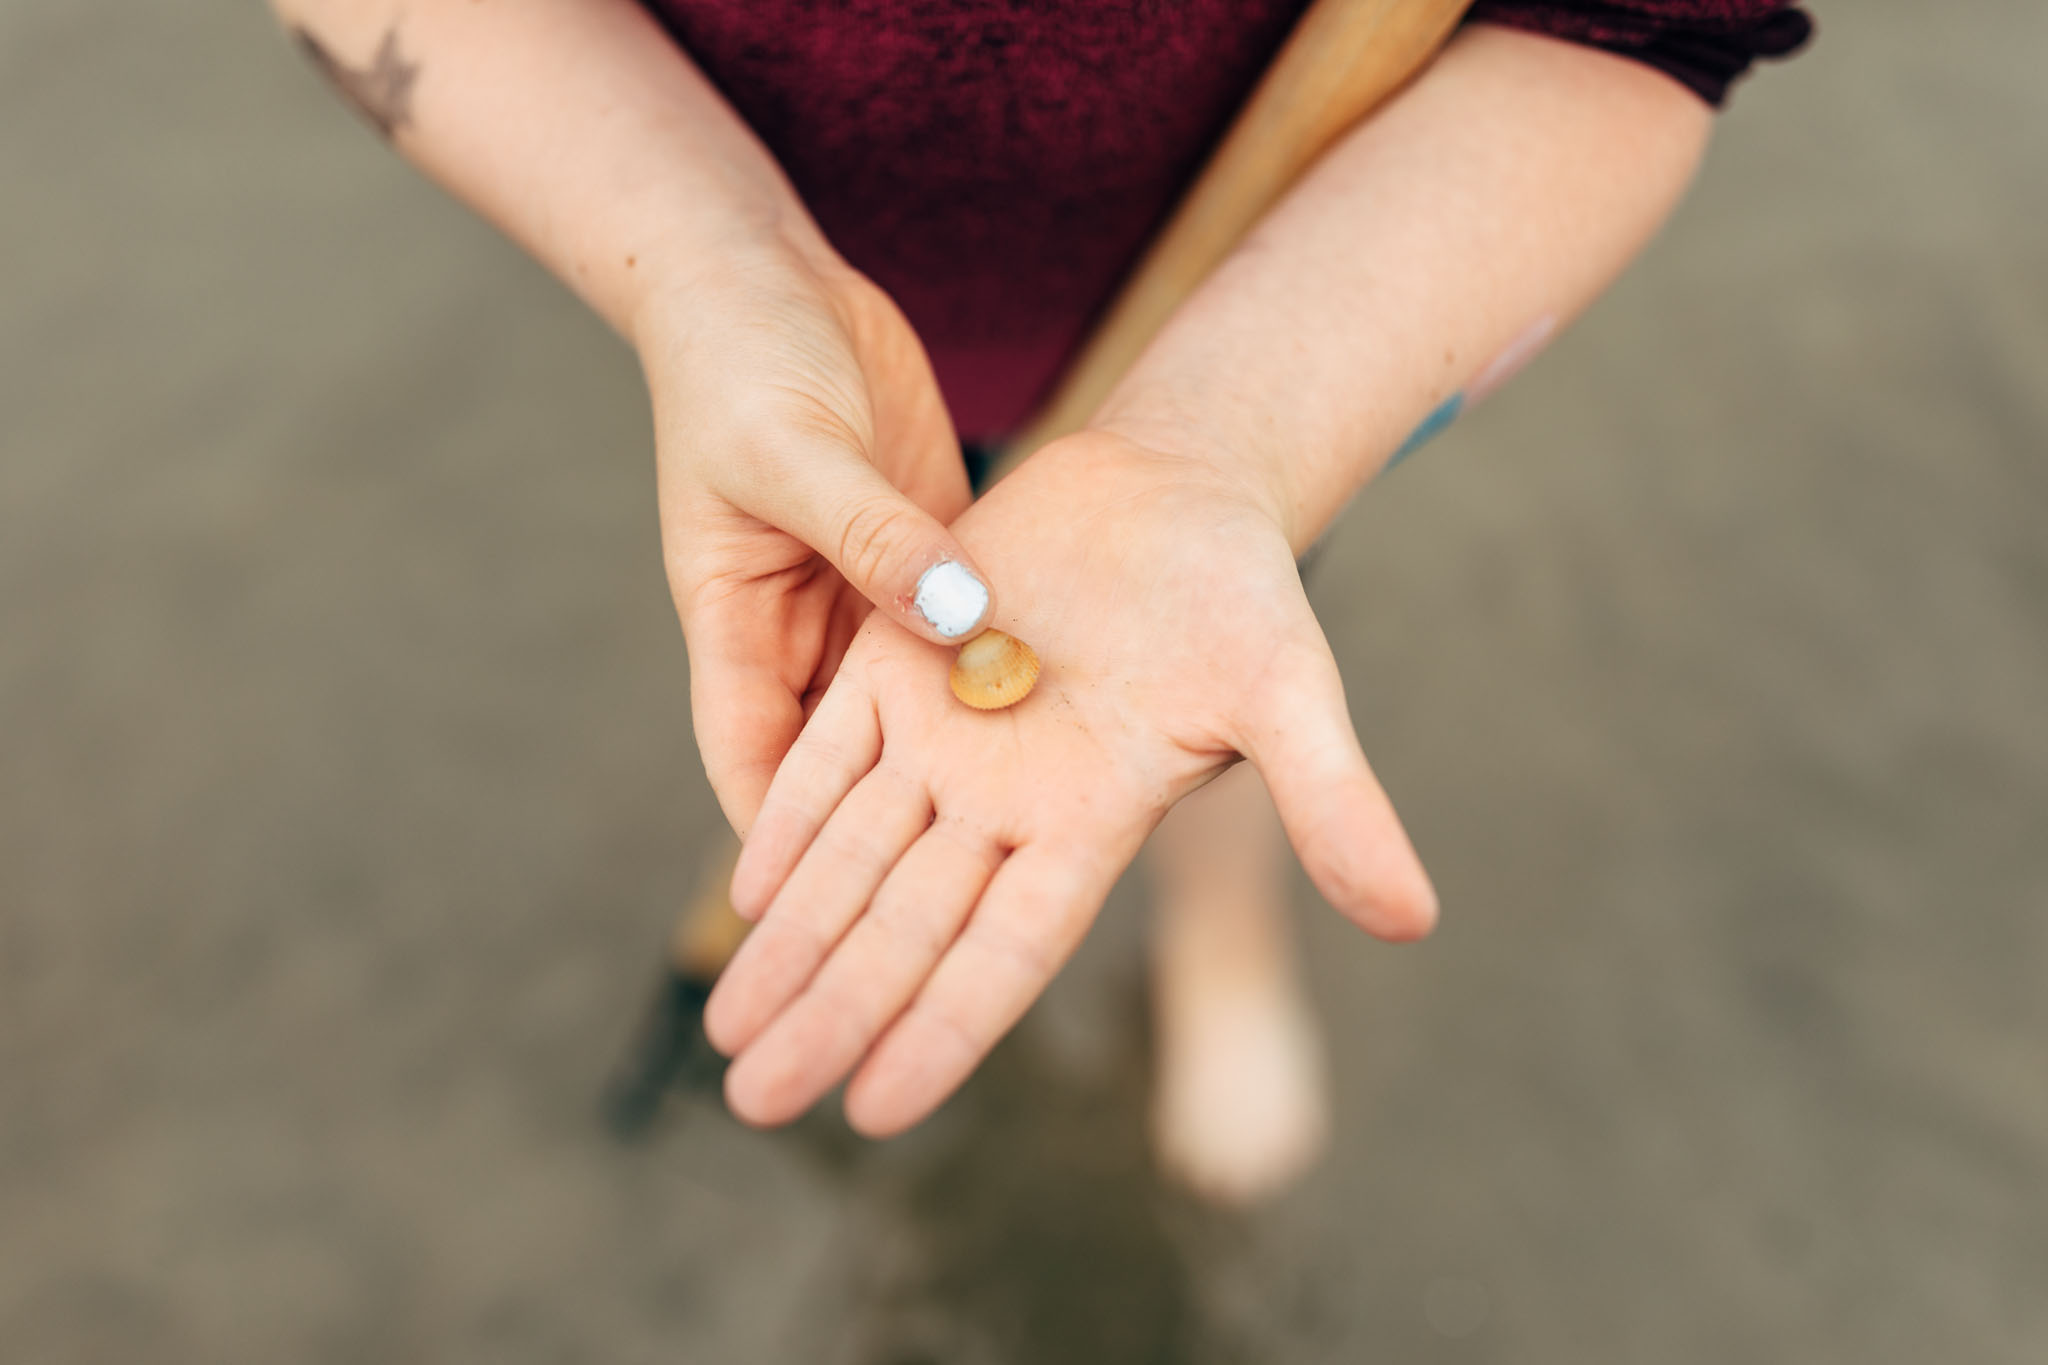 Girl holds tiny clam in palm of hand